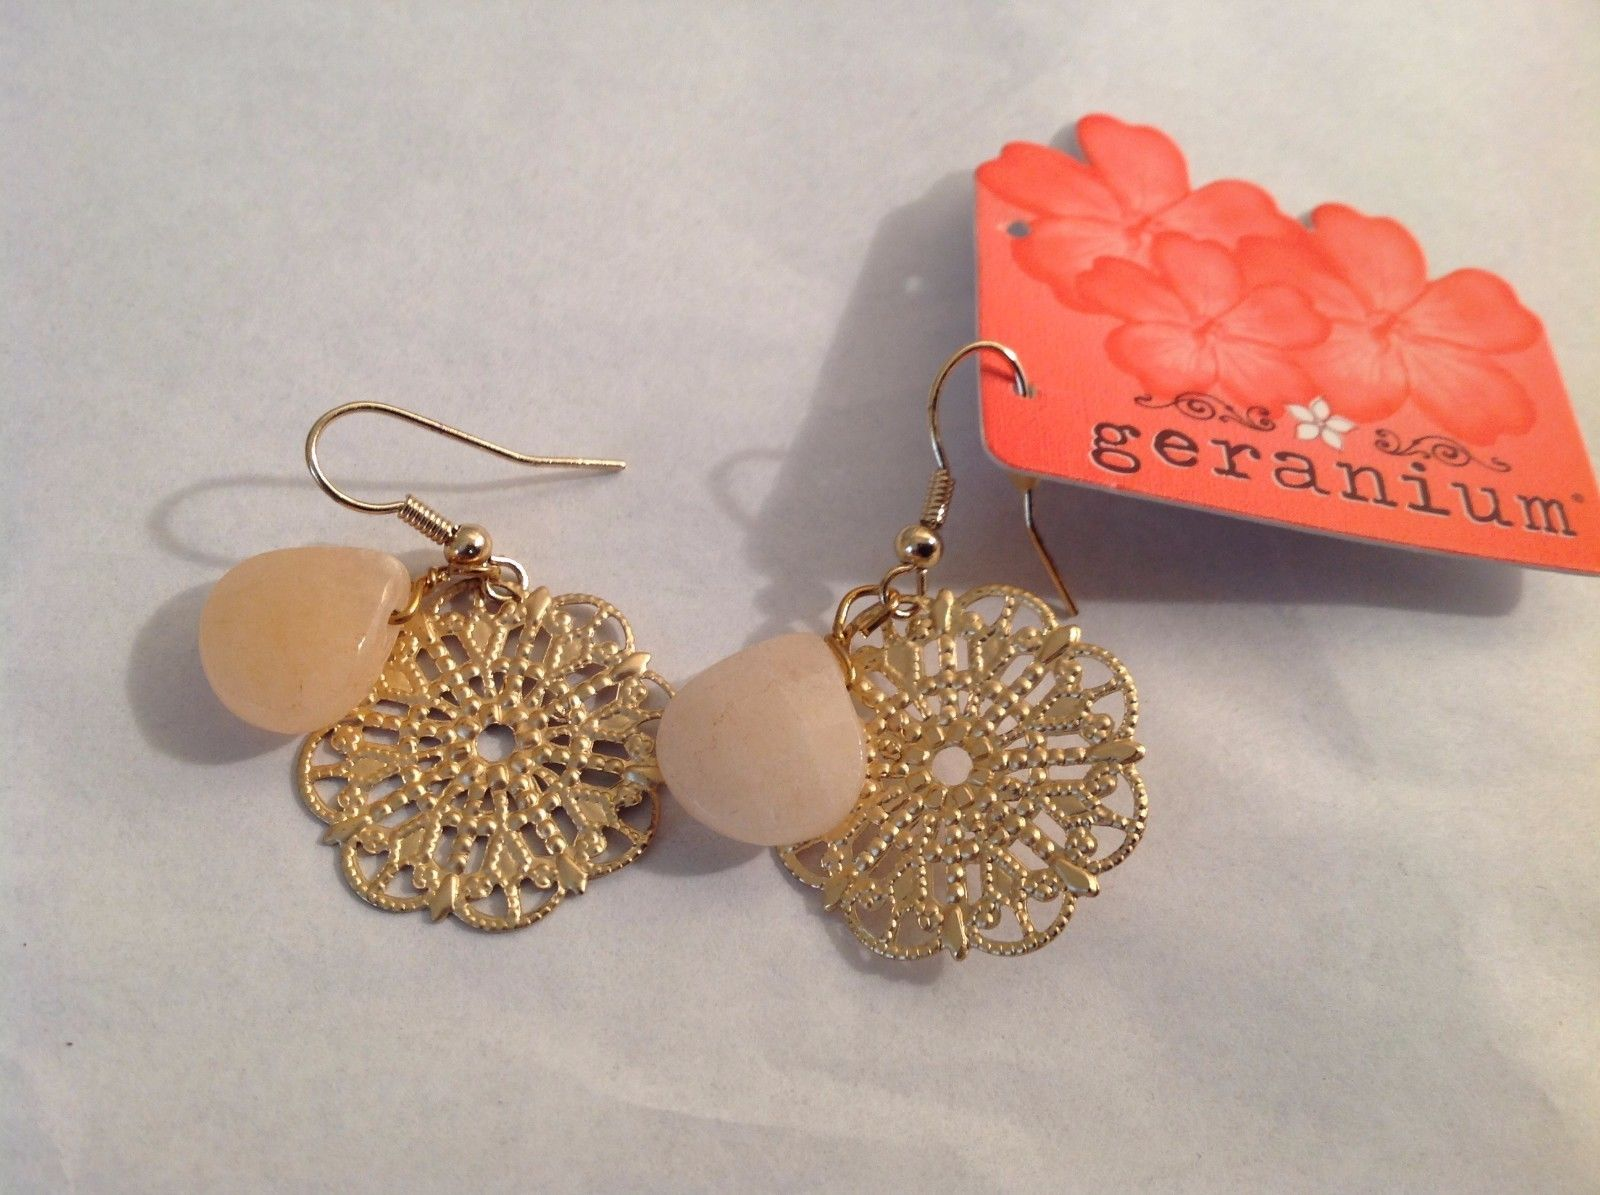 NEW Gold Toned Dangling Mandala Stone Earrings Geranium French Hook NWT